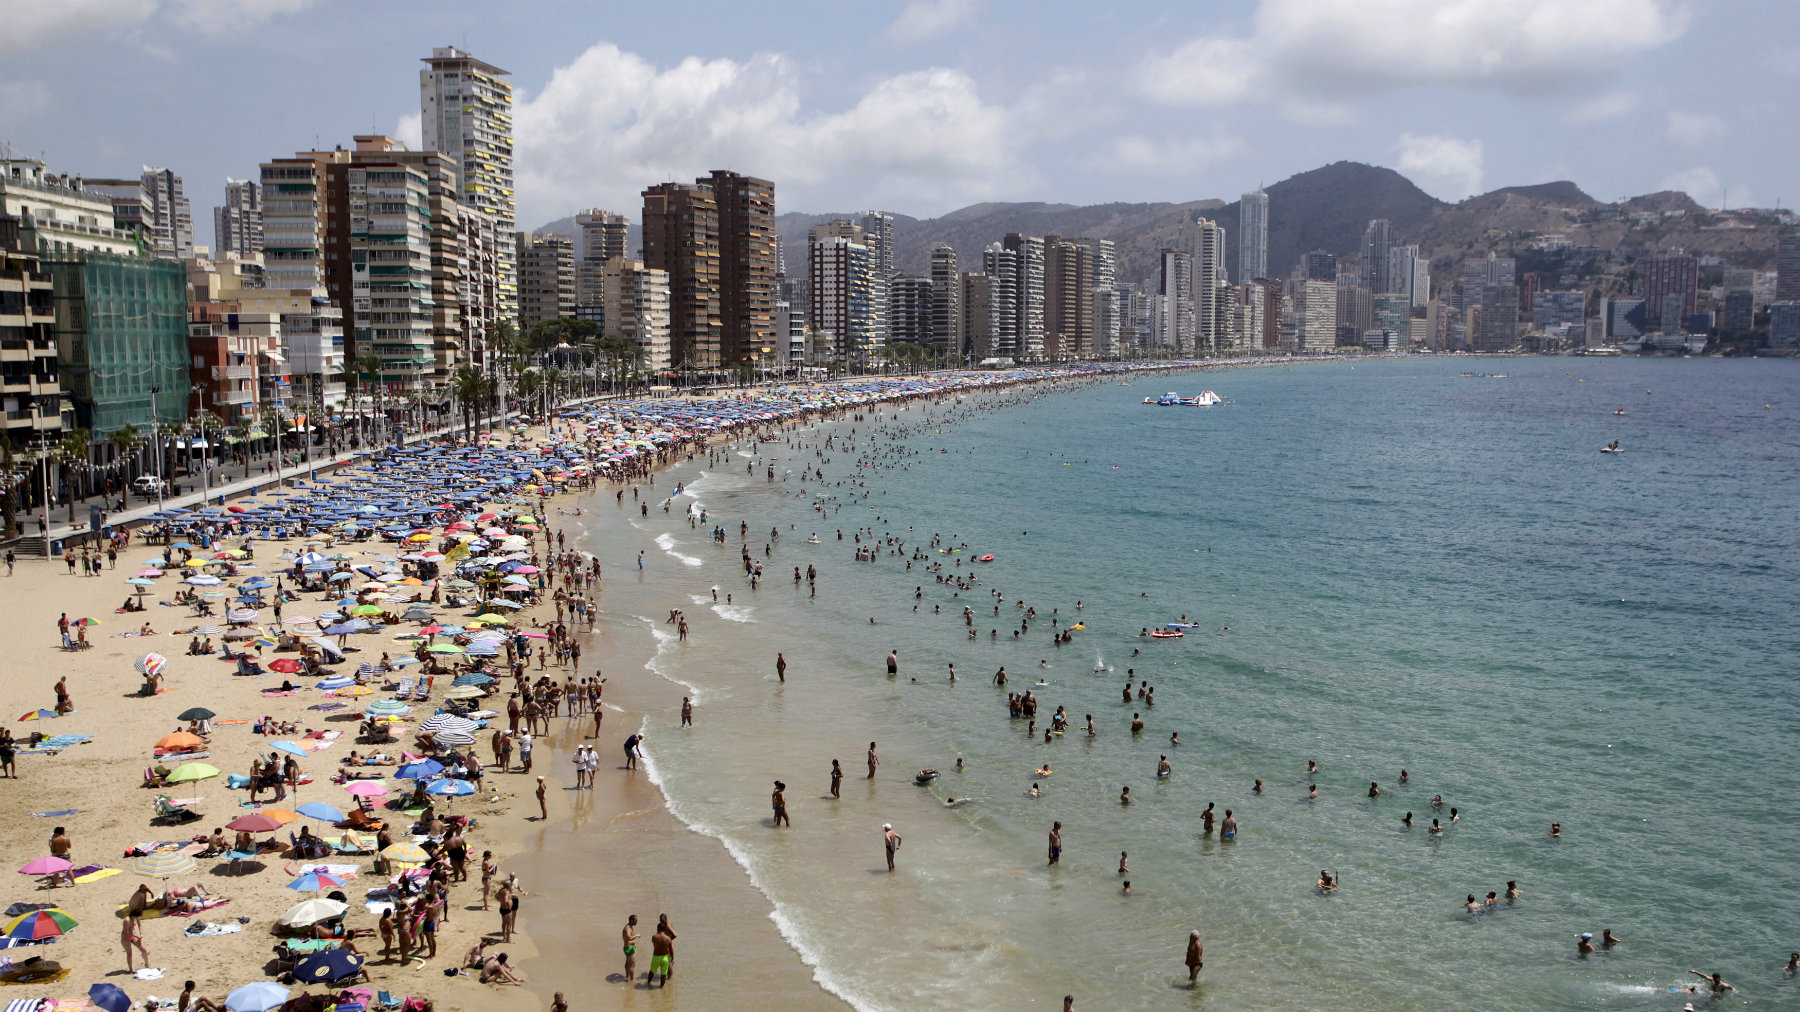 People relax at the beach during a hot summer day in Benidorm, Spain.